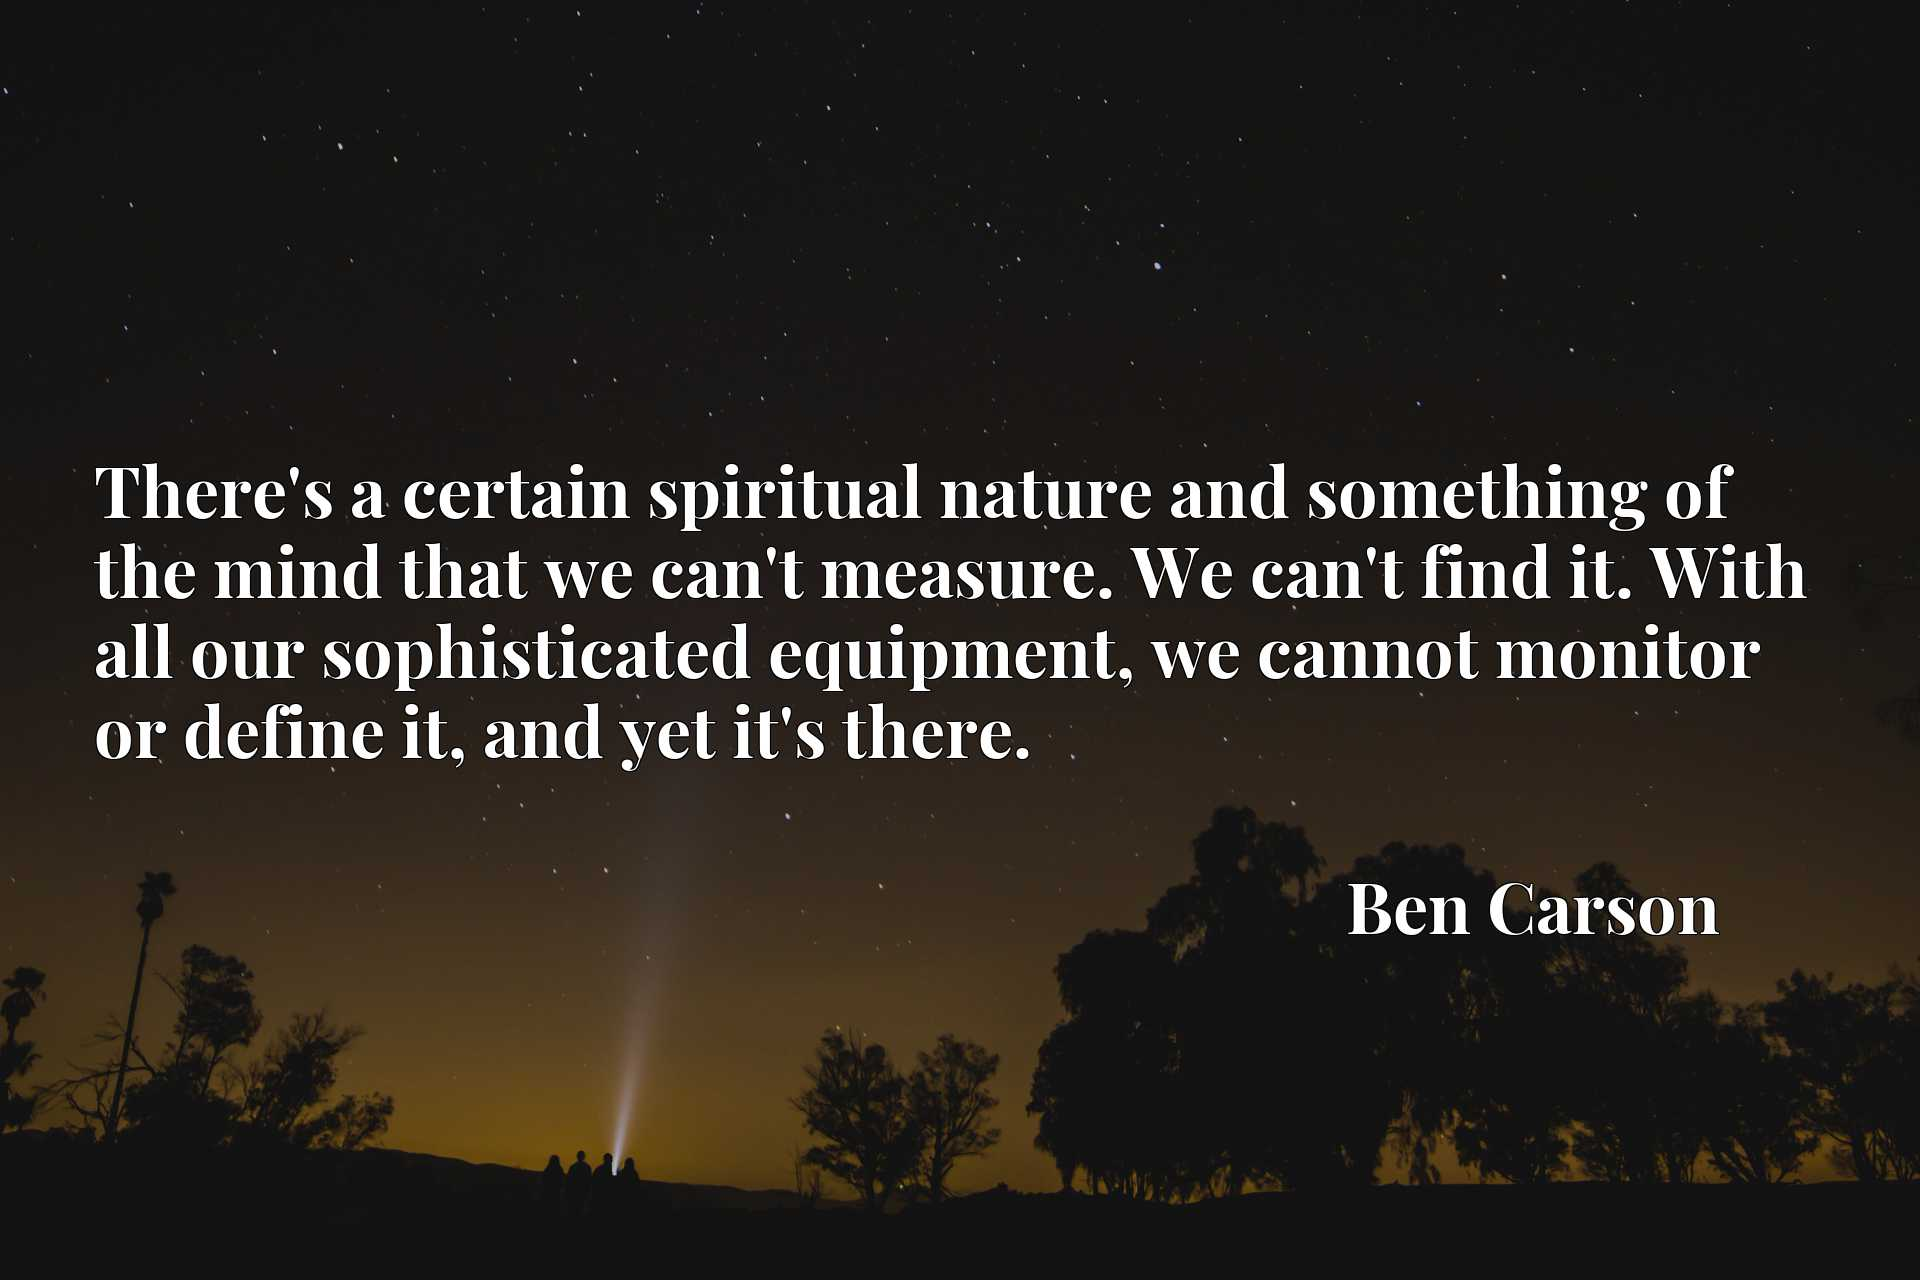 There's a certain spiritual nature and something of the mind that we can't measure. We can't find it. With all our sophisticated equipment, we cannot monitor or define it, and yet it's there.